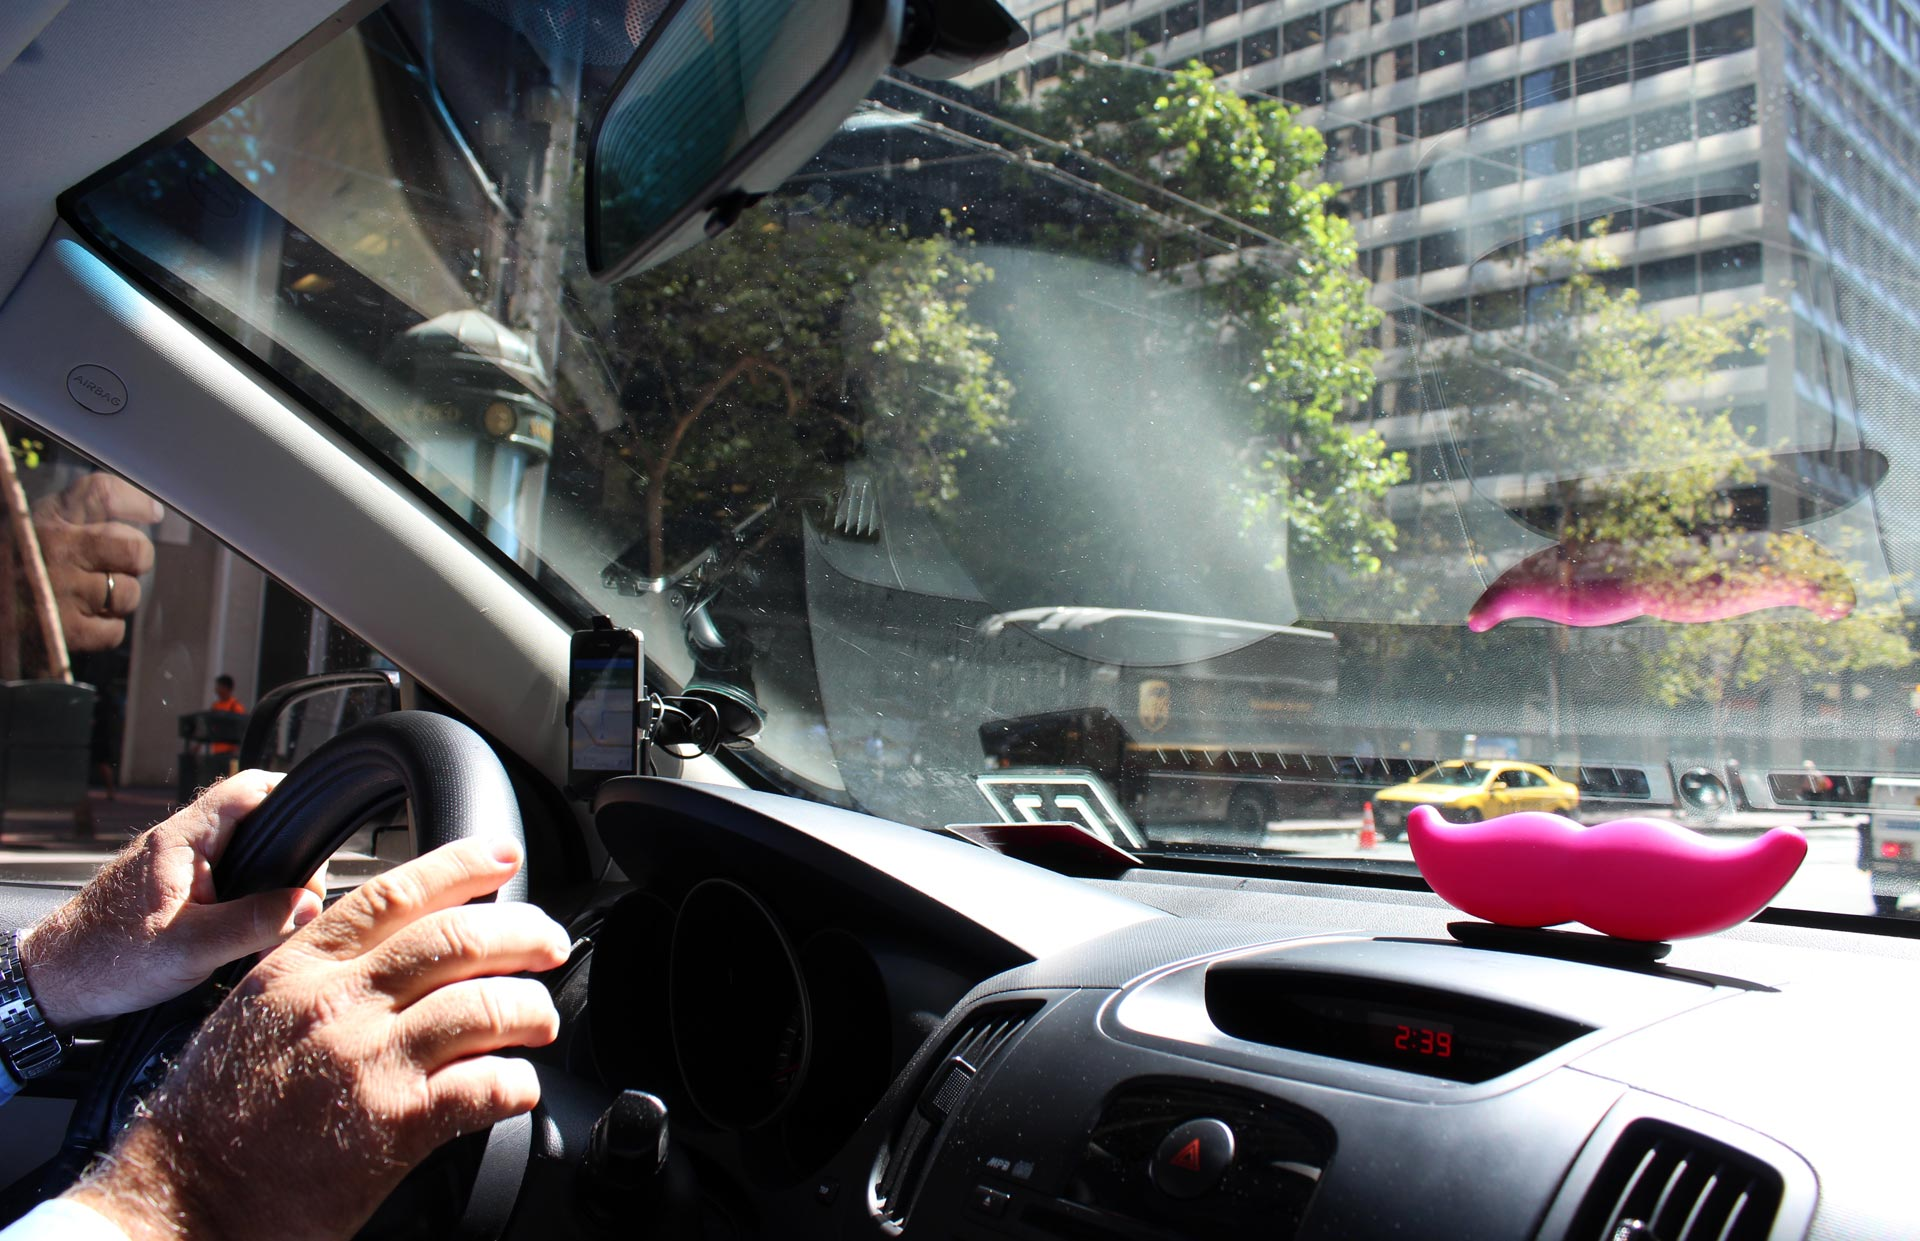 James Lesondak, 58, drives through downtown San Francisco on Aug. 31, 2015. Lesondak works for both Lyft and Uber.